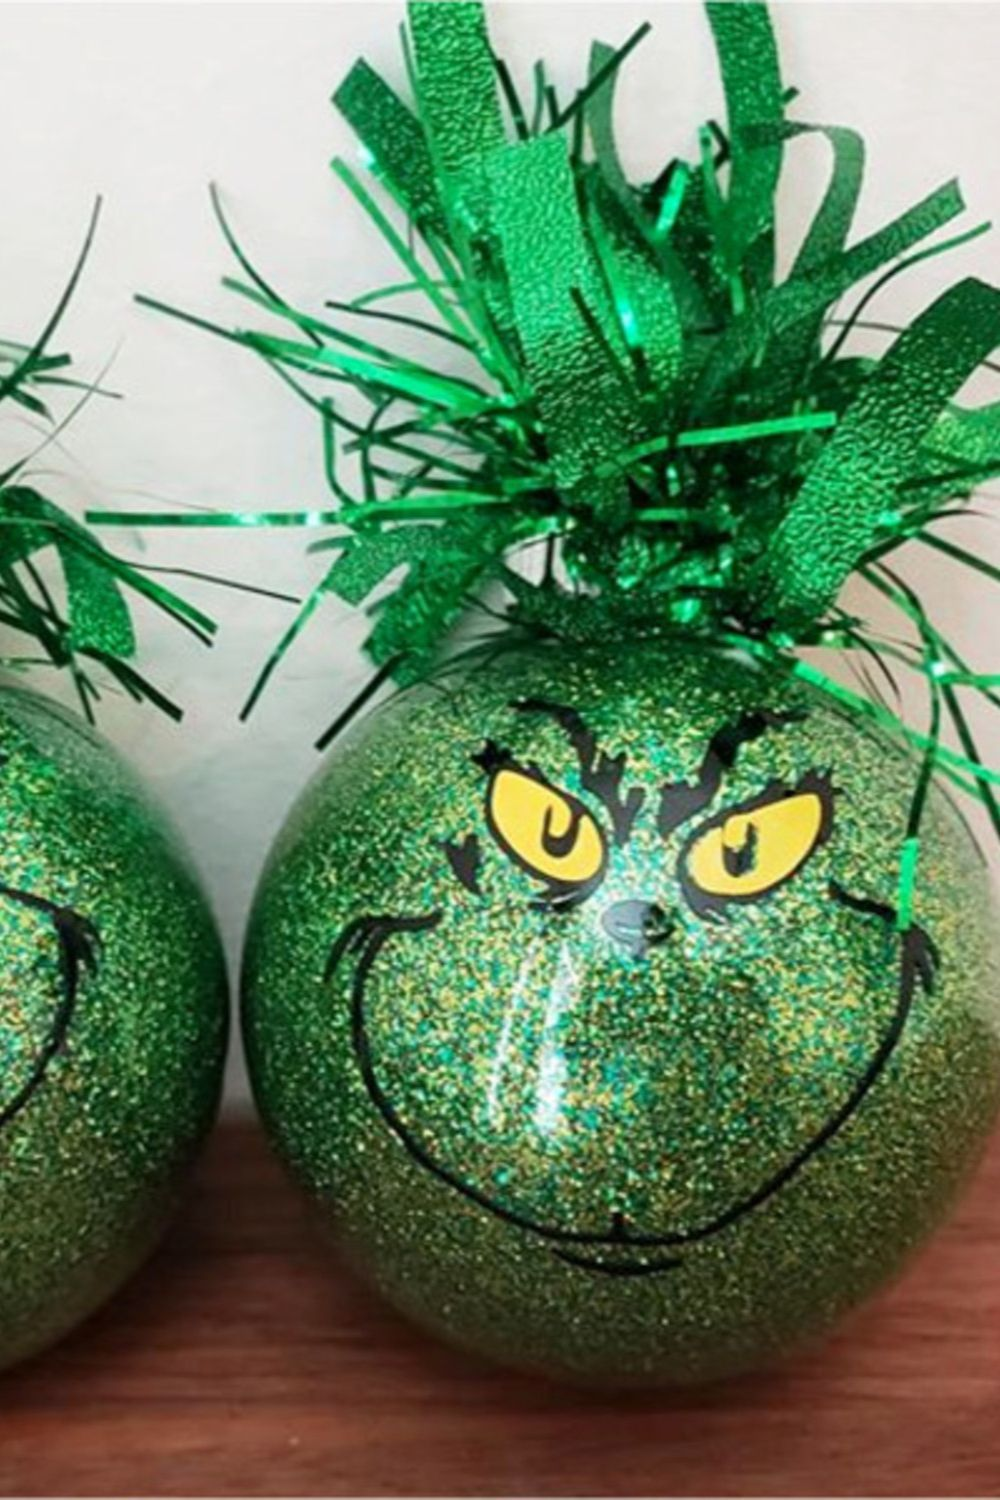 2020 Grinch Christmas Easy DIY Grinch Decorations, Ornaments & Crafts for Christmas 2020